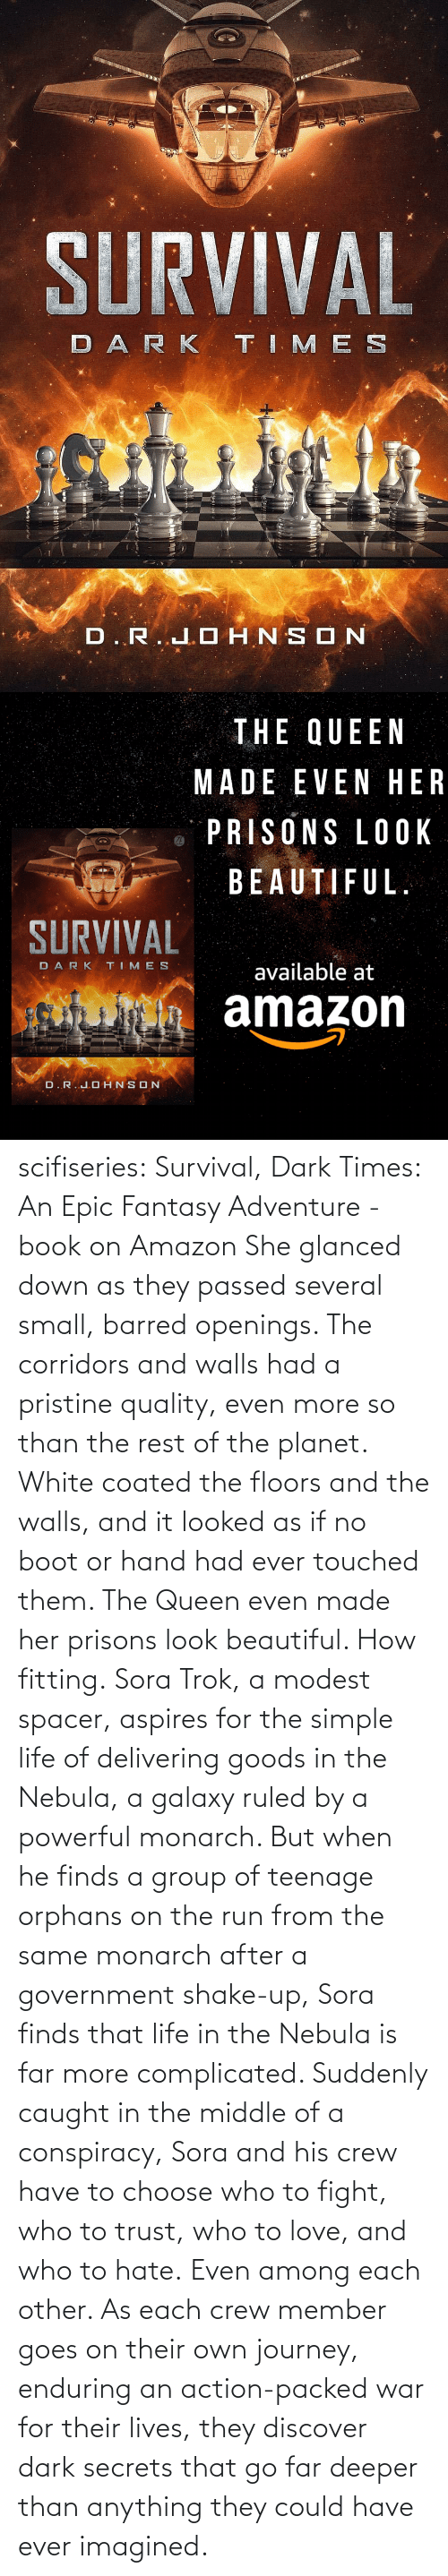 Journey: scifiseries: Survival, Dark Times: An Epic Fantasy Adventure - book on Amazon  She glanced down as they  passed several small, barred openings. The corridors and walls had a  pristine quality, even more so than the rest of the planet. White coated  the floors and the walls, and it looked as if no boot or hand had ever  touched them.  The Queen even made her prisons look beautiful.  How fitting. Sora  Trok, a modest spacer, aspires for the simple life of delivering goods  in the Nebula, a galaxy ruled by a powerful monarch. But when he finds a  group of teenage orphans on the run from the same monarch after a  government shake-up, Sora finds that life in the Nebula is far more complicated.  Suddenly  caught in the middle of a conspiracy, Sora and his crew have to choose  who to fight, who to trust, who to love, and who to hate. Even among each other.  As  each crew member goes on their own journey, enduring an action-packed  war for their lives, they discover dark secrets that go far deeper than  anything they could have ever imagined.